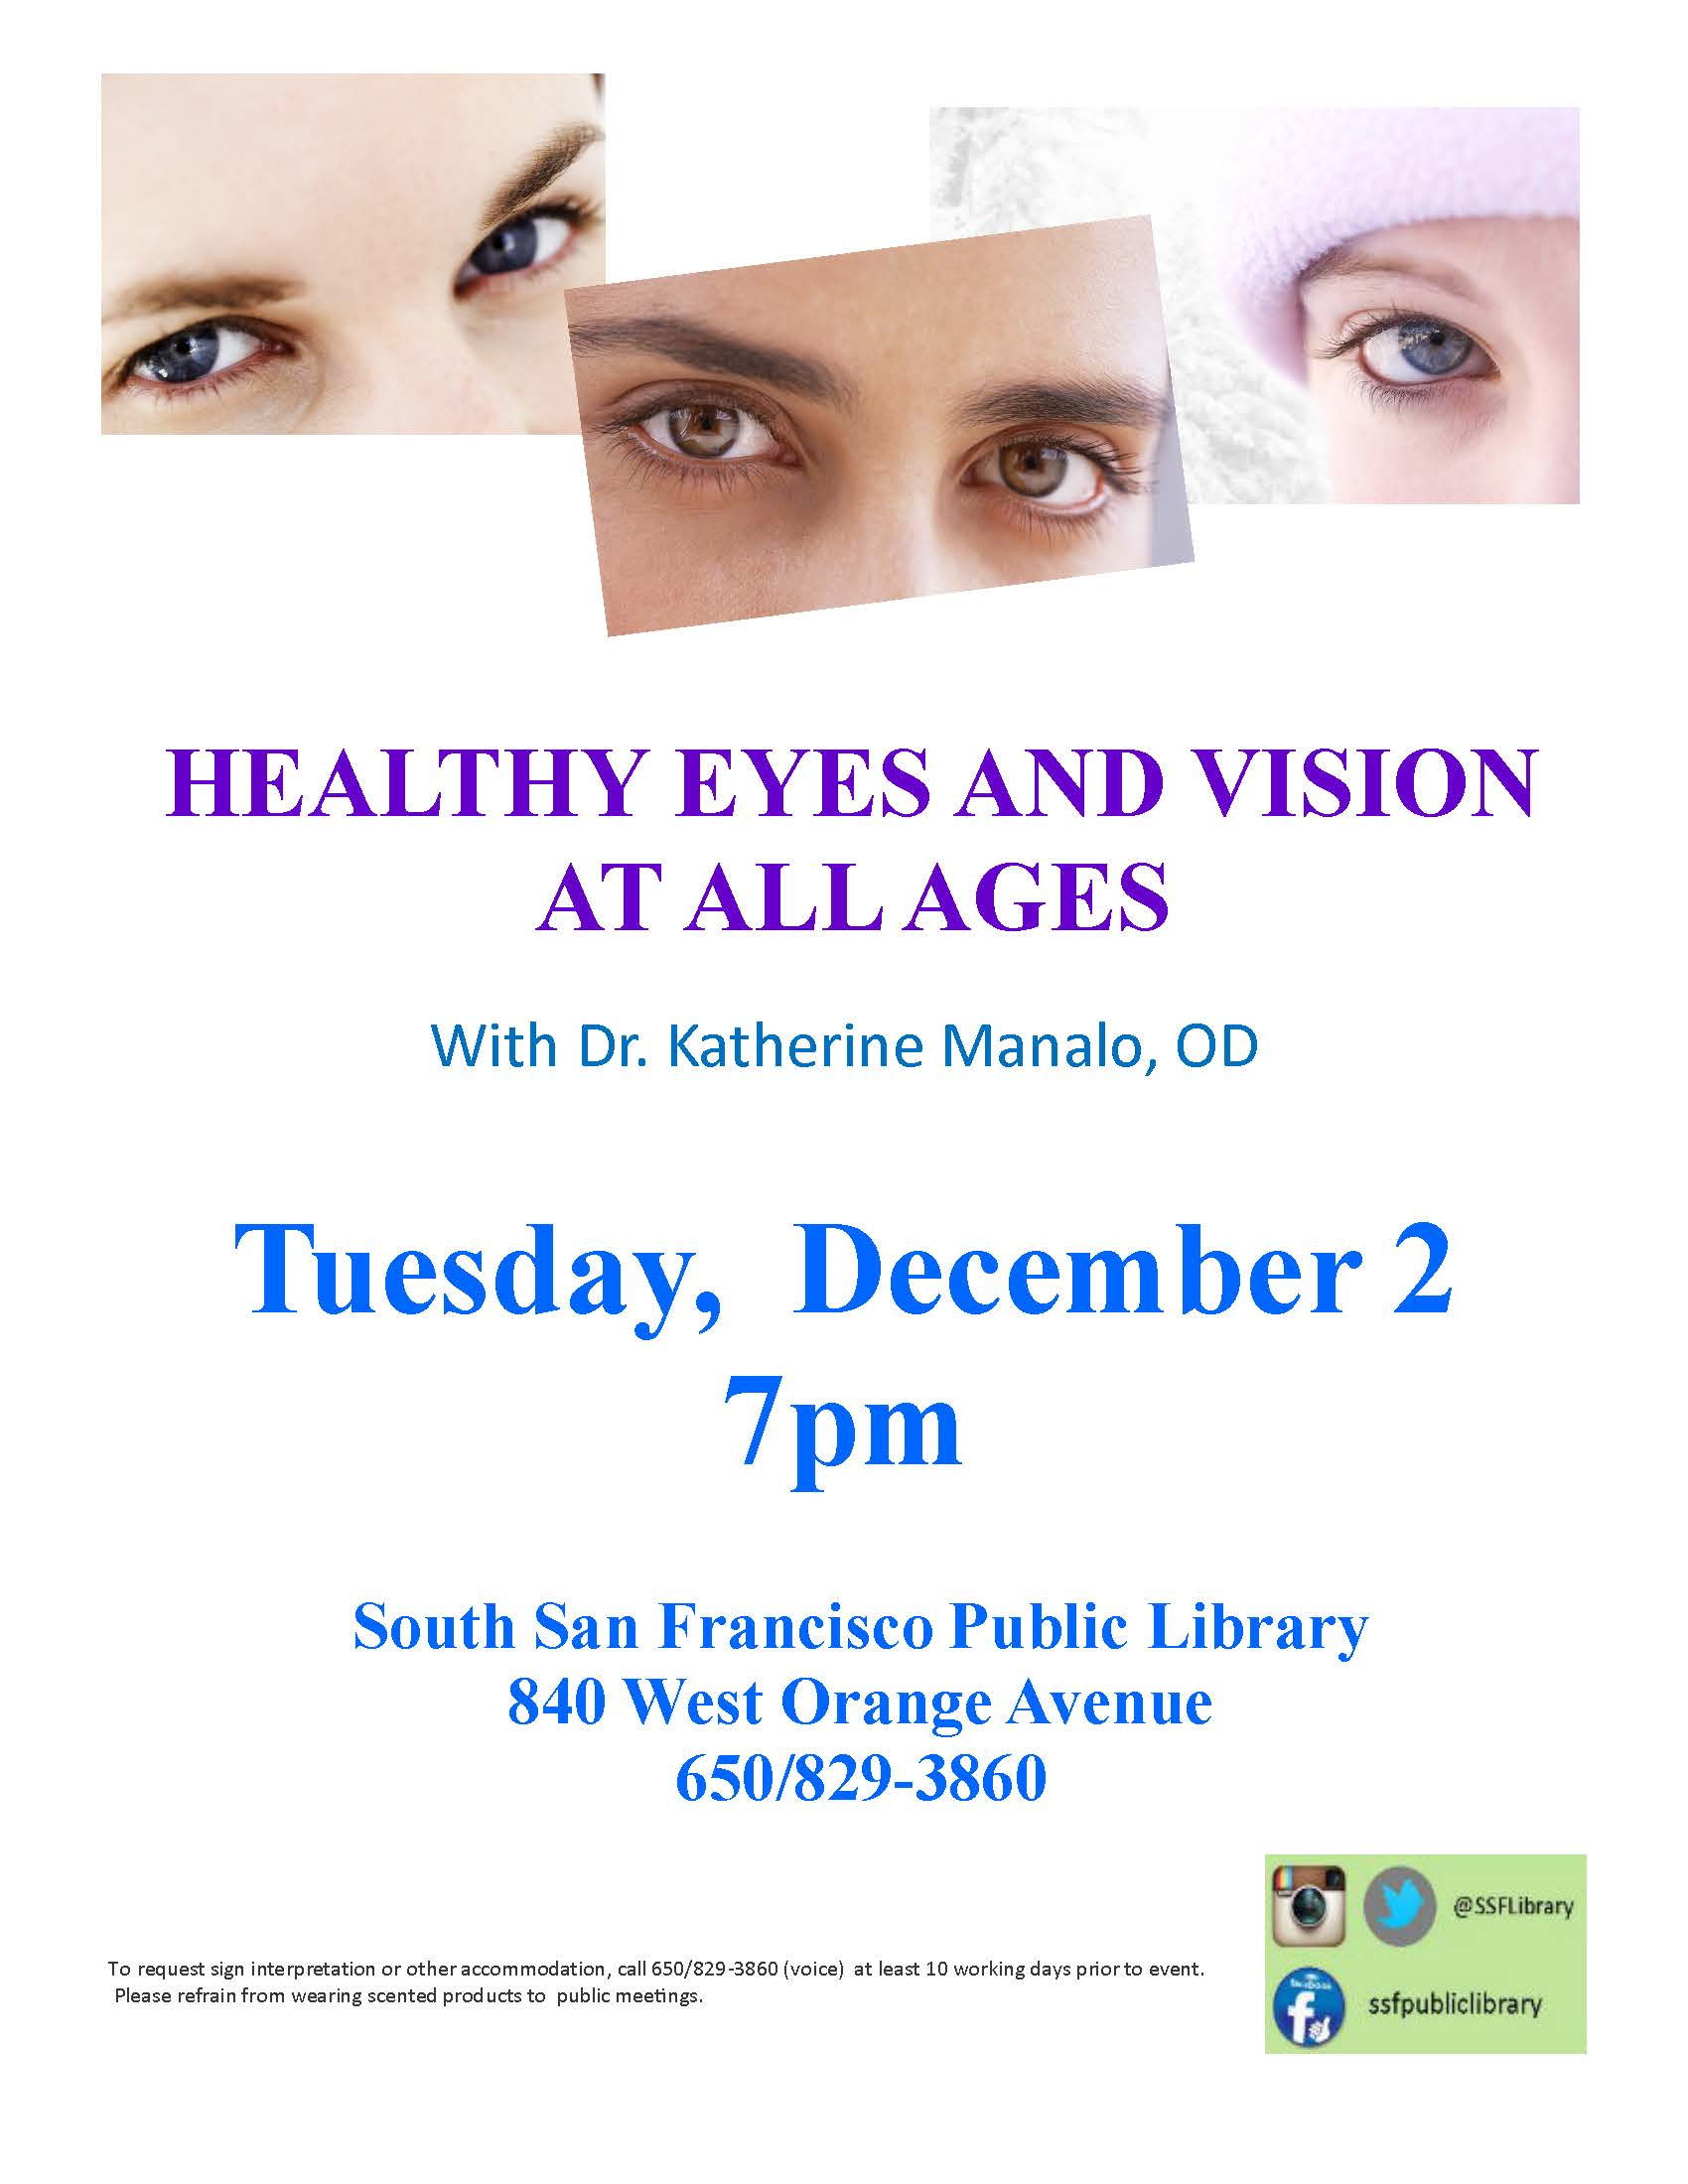 SSF Library Presents: Healthy Eyes At All Ages